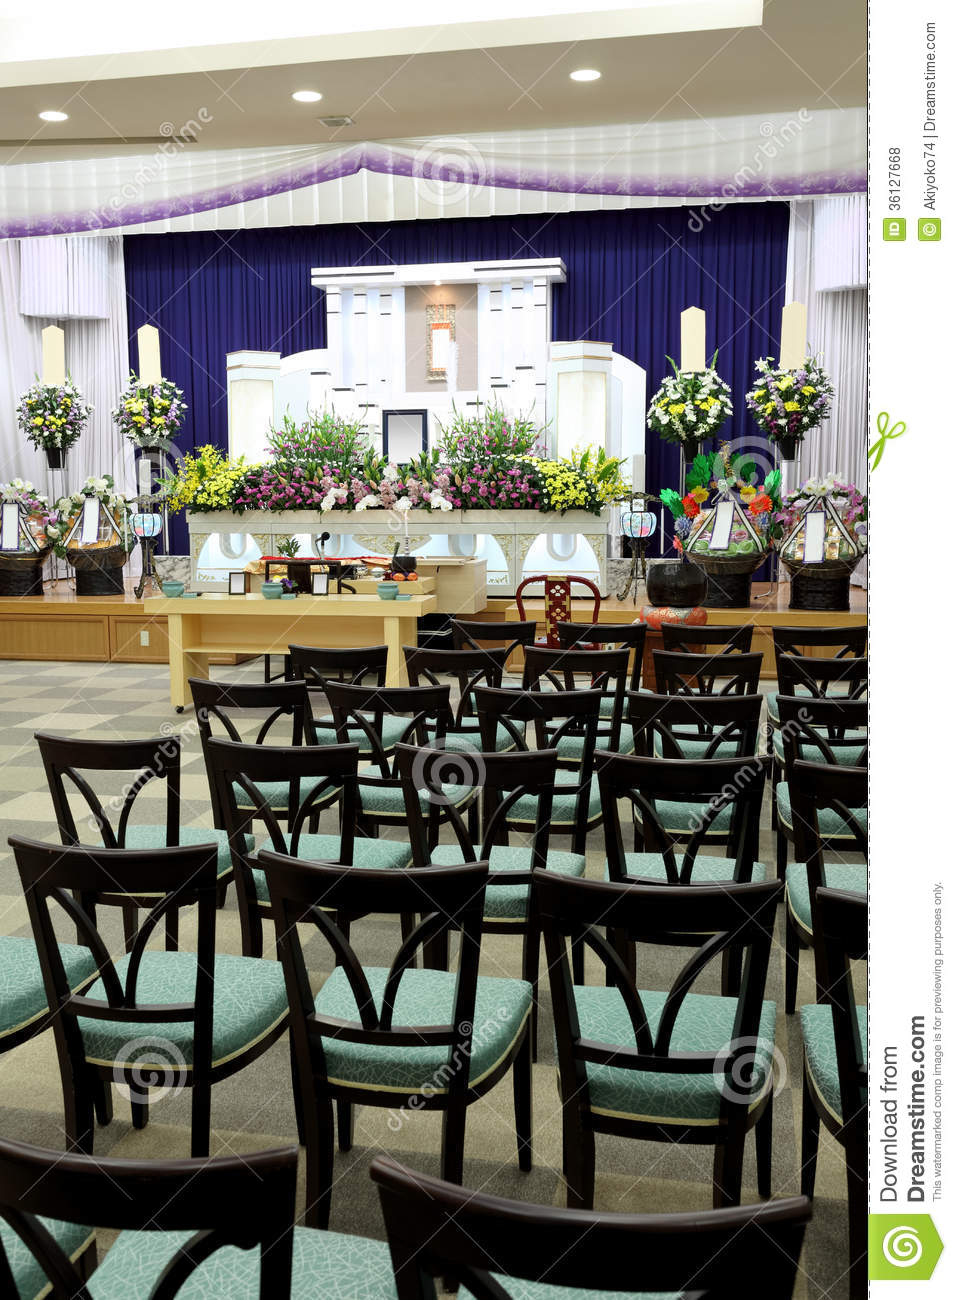 Funeral Home Interior Colors: Funeral Home Stock Photo. Image Of Entomb, Death, Burial